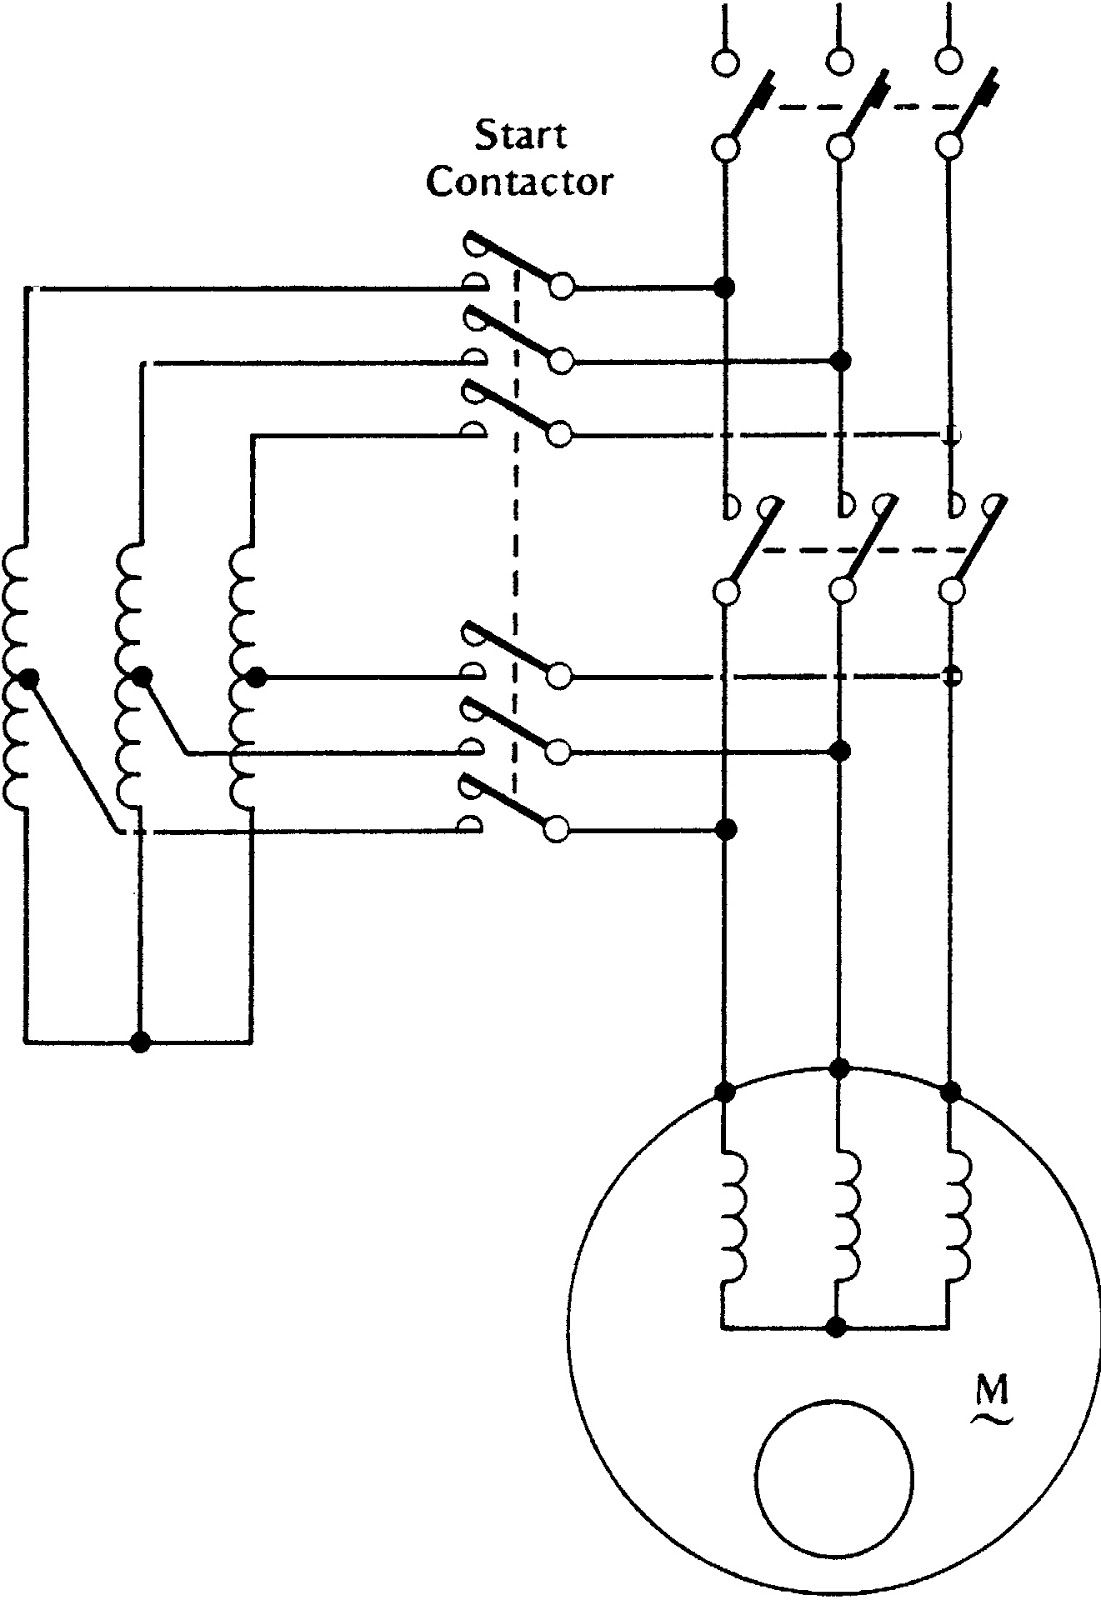 motor winding thermistor wiring diagram   39 wiring